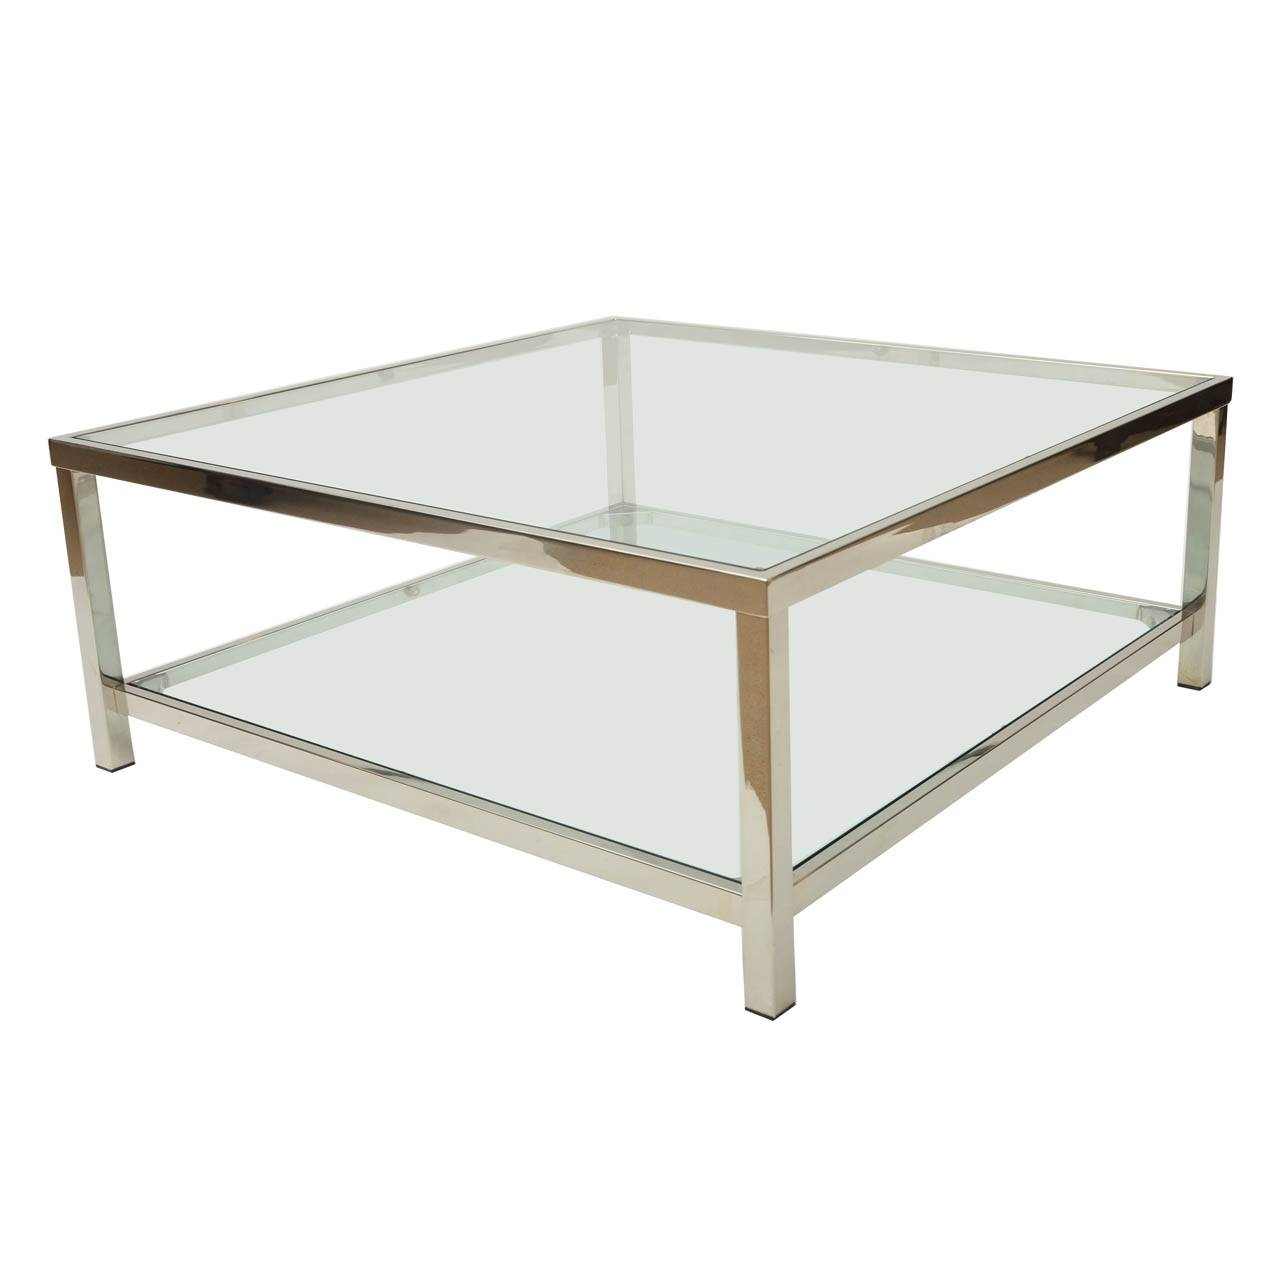 Ideas For Square Coffee Tables — Interior Home Design regarding Glass And Chrome Coffee Tables (Image 16 of 30)